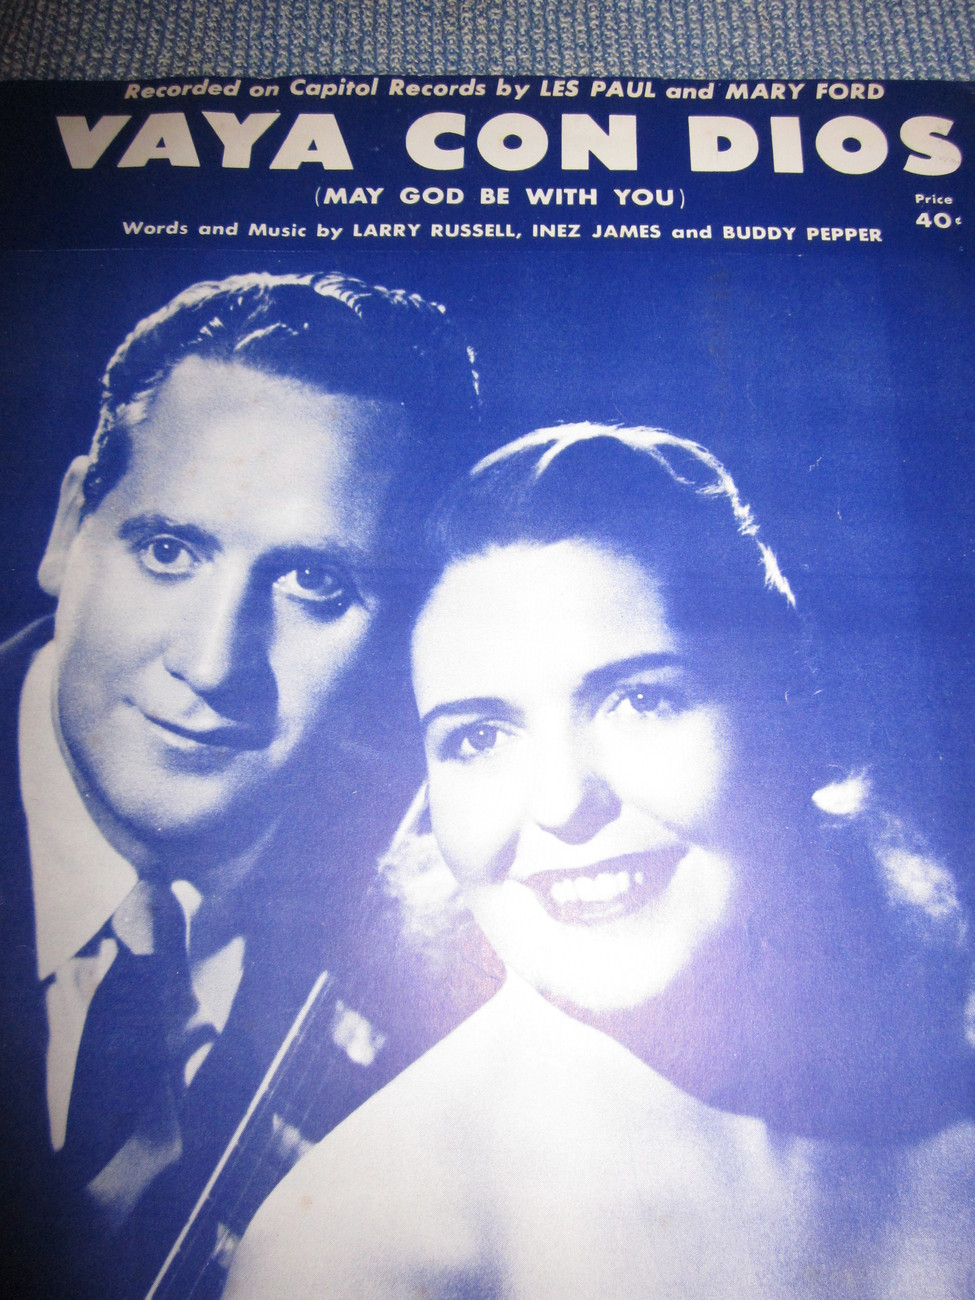 Vintage Sheet Music Vaya Con Dios - Les Paul and Mary Ford